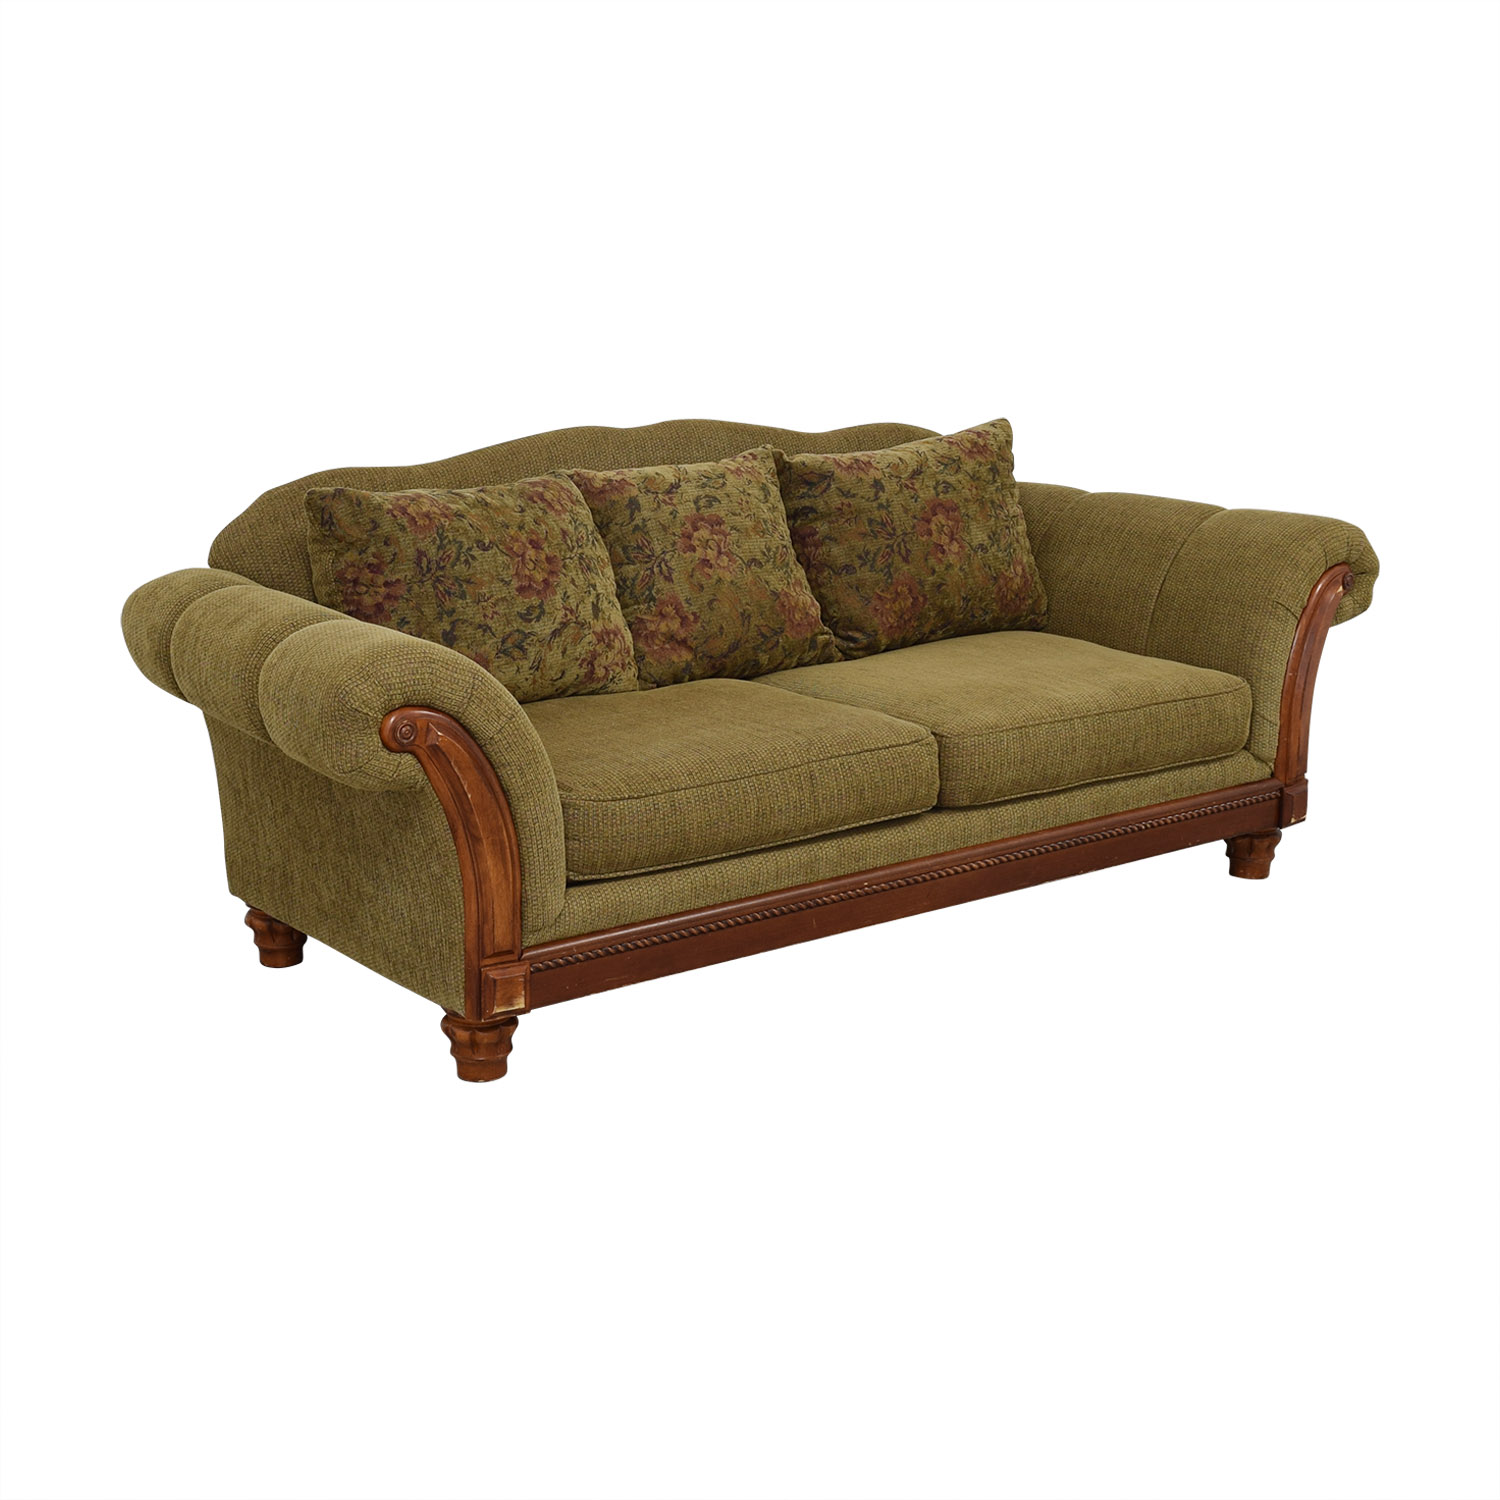 buy Klaussner Upholstered Sofa Klaussner